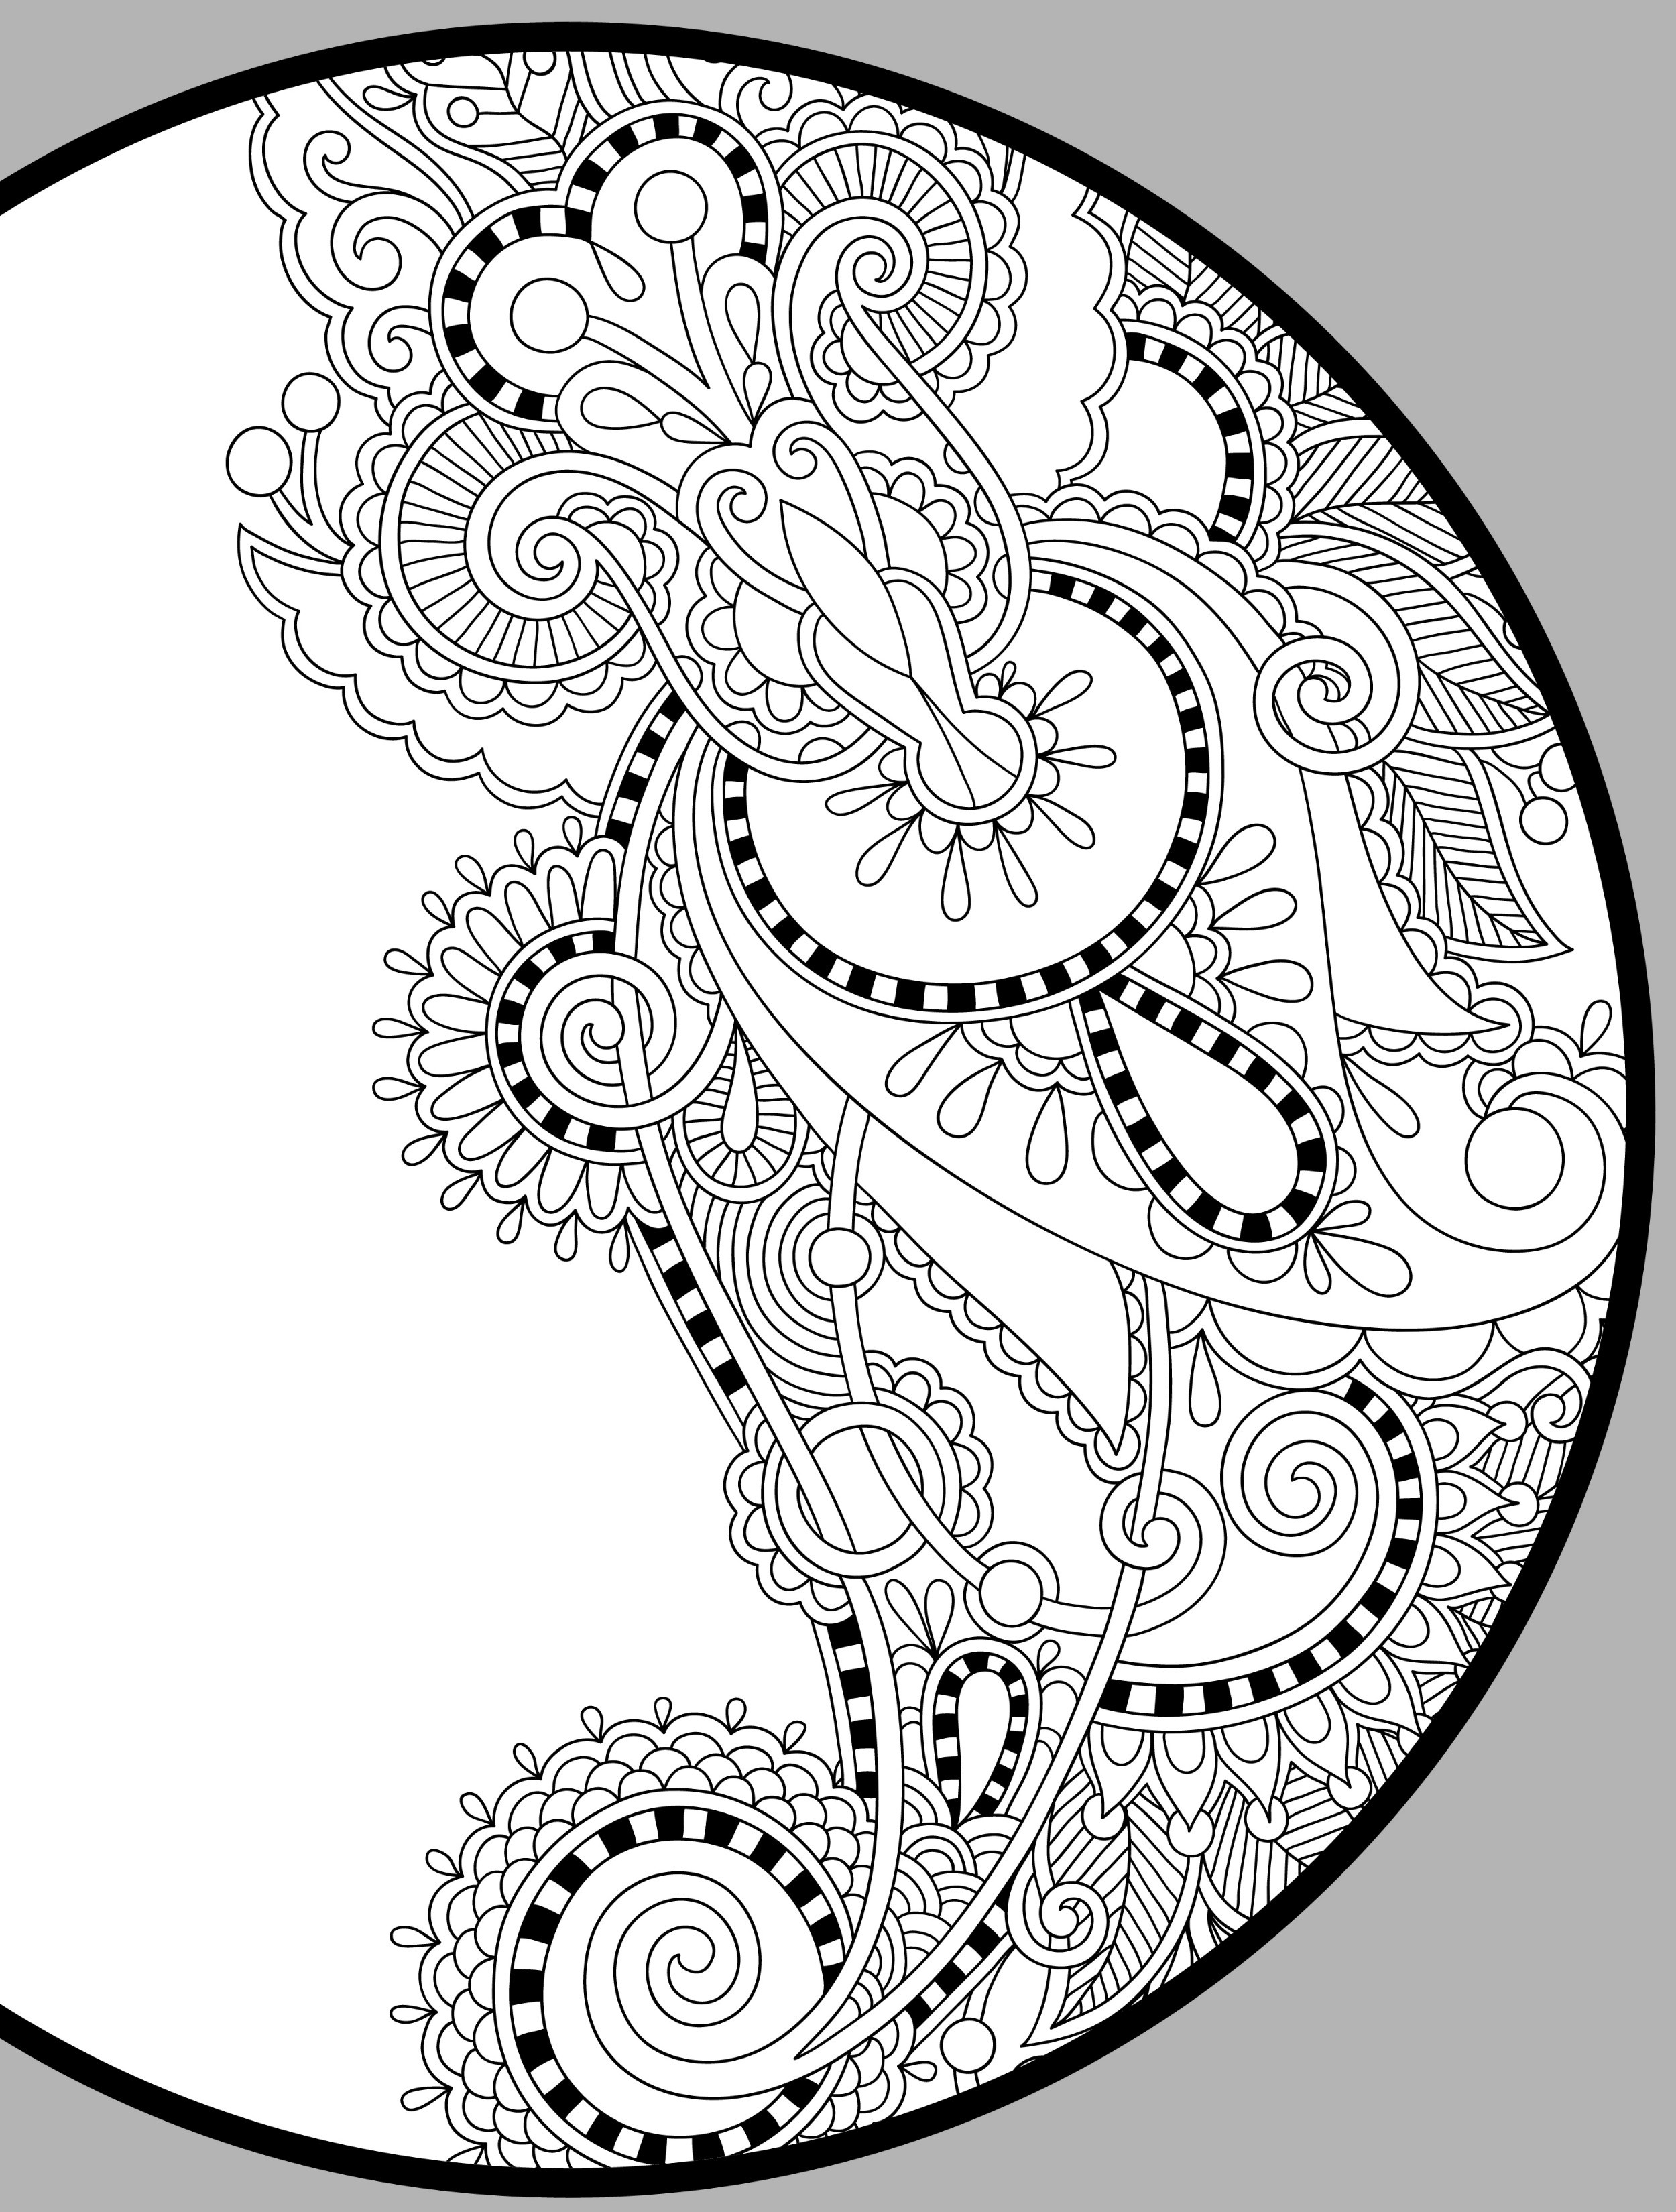 Printable Free Coloring Pages For Adults  Free Printable Coloring Pages For Adults Pdf The Color Panda